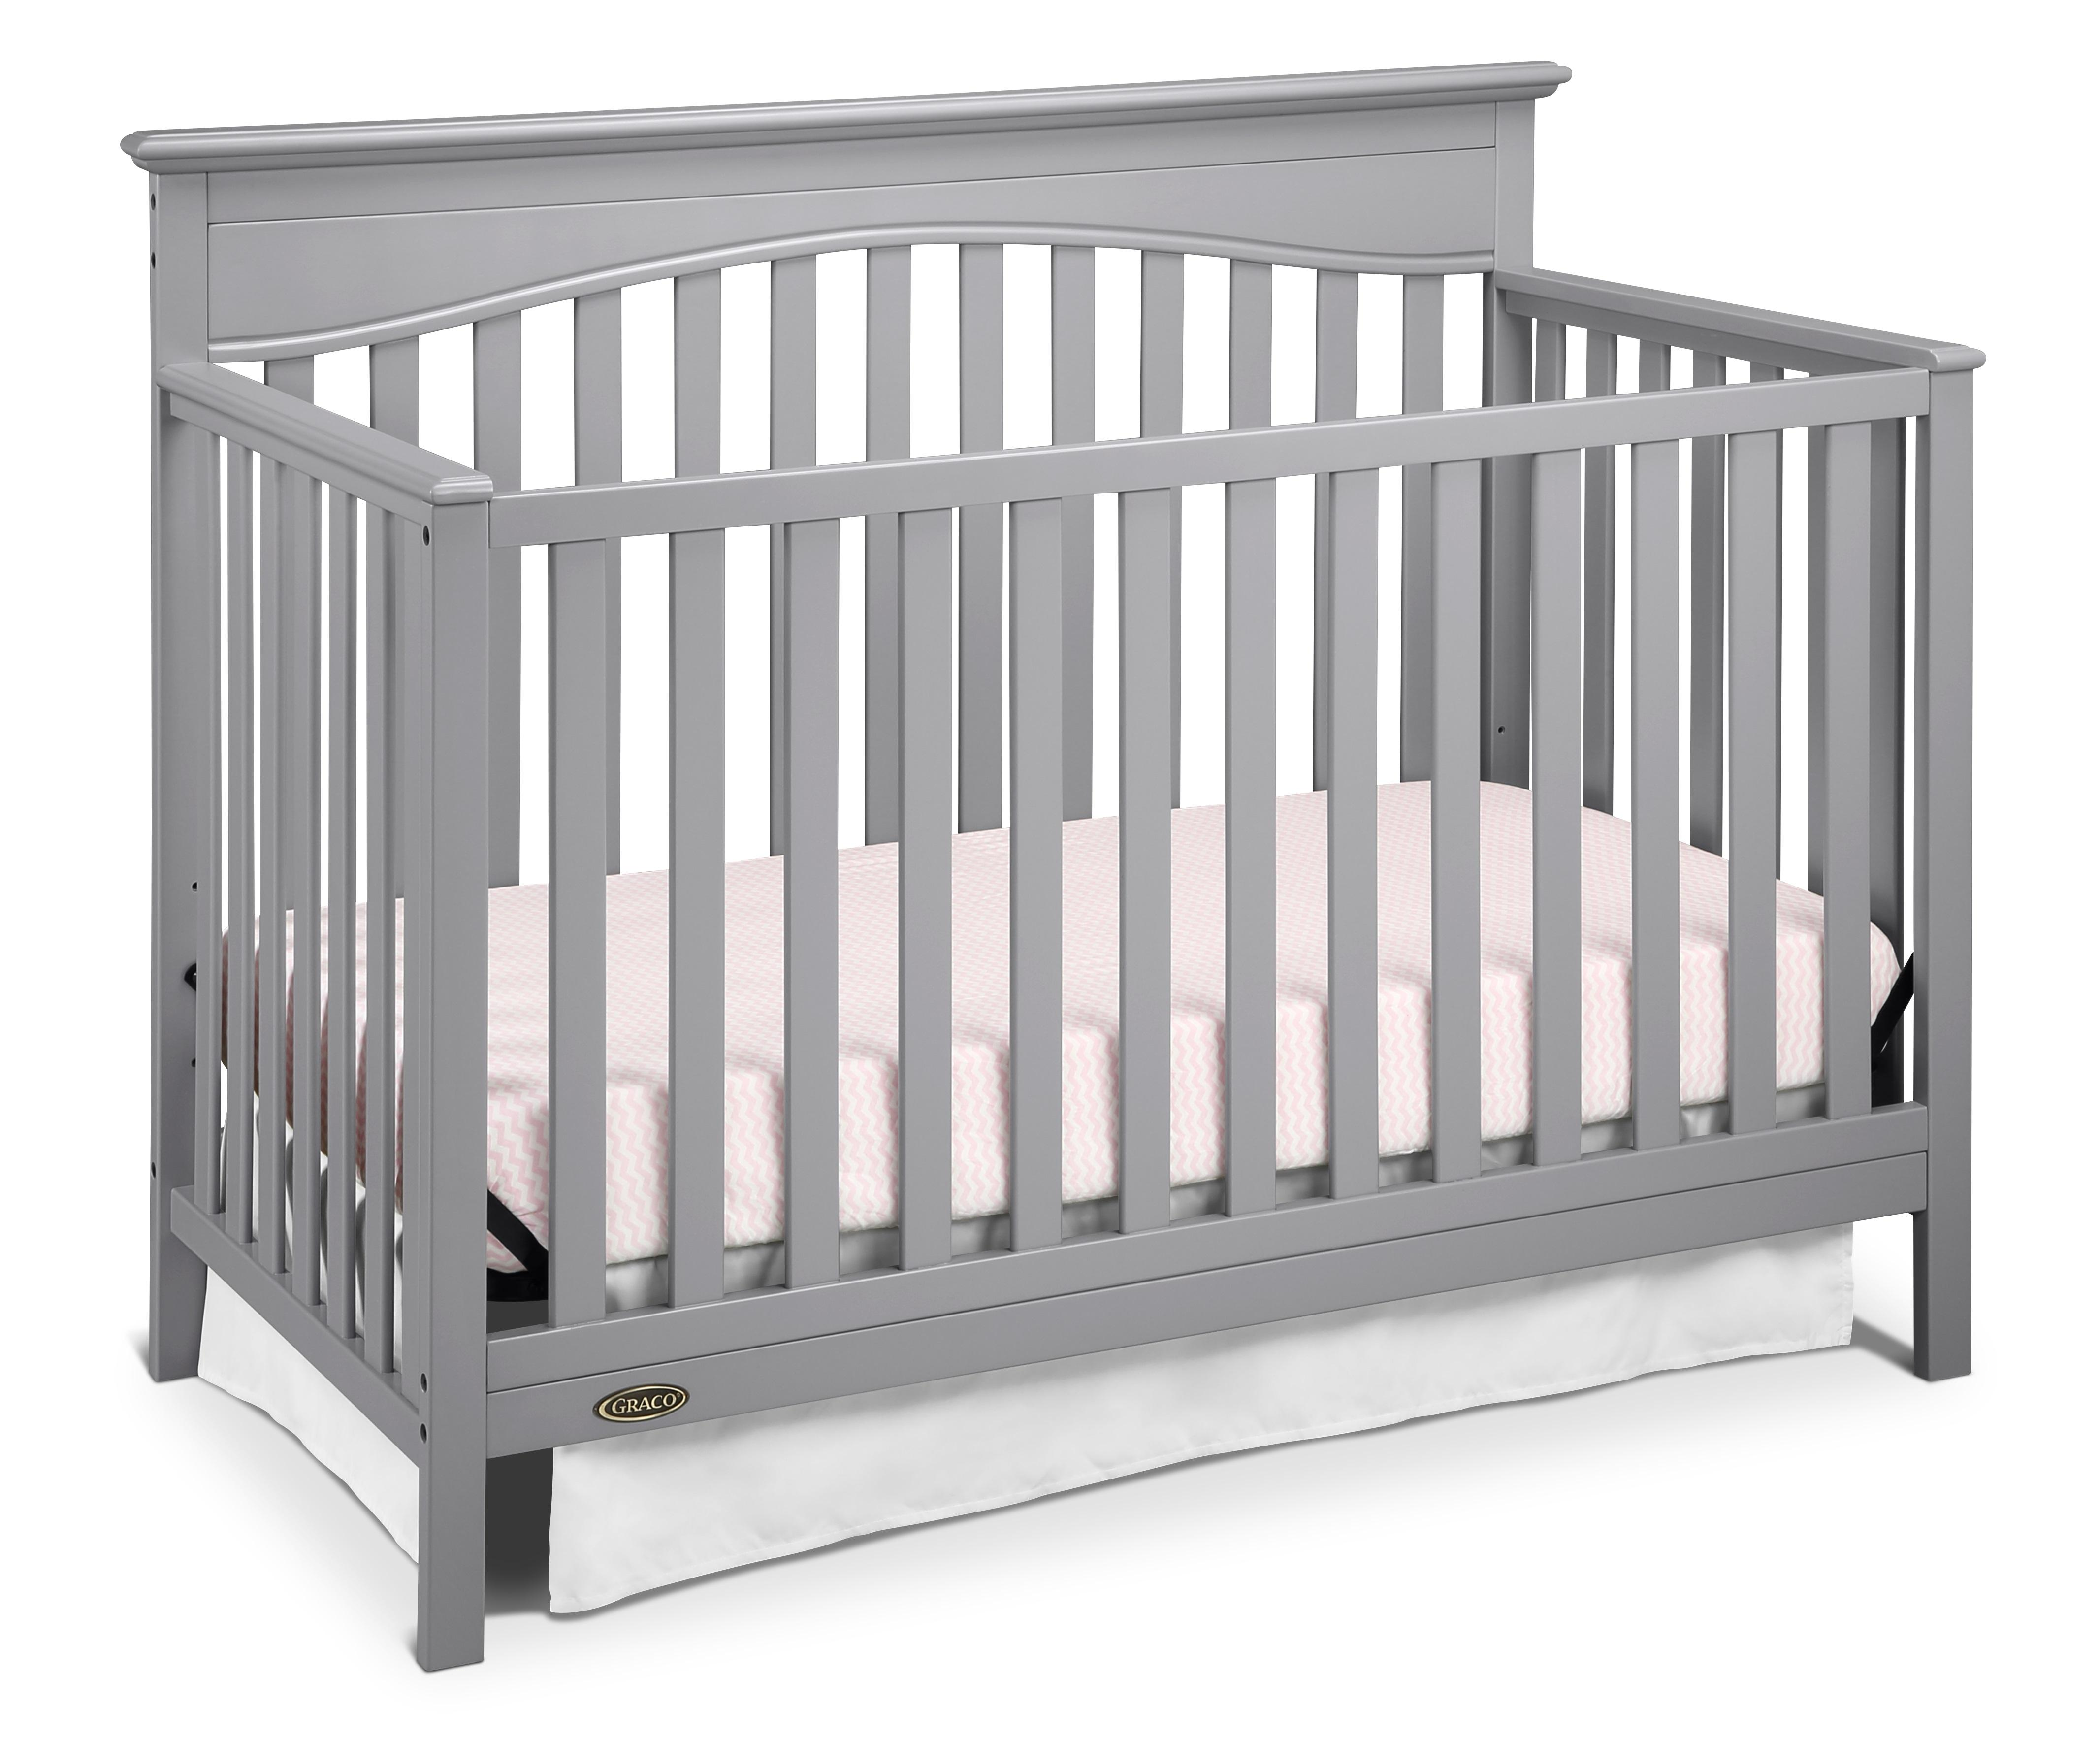 signature crib size amazing lauren inspiring mattresses for graco toddler bedroom ar market top on best mattressesr baby a safest furniture website the full mattress of cribs